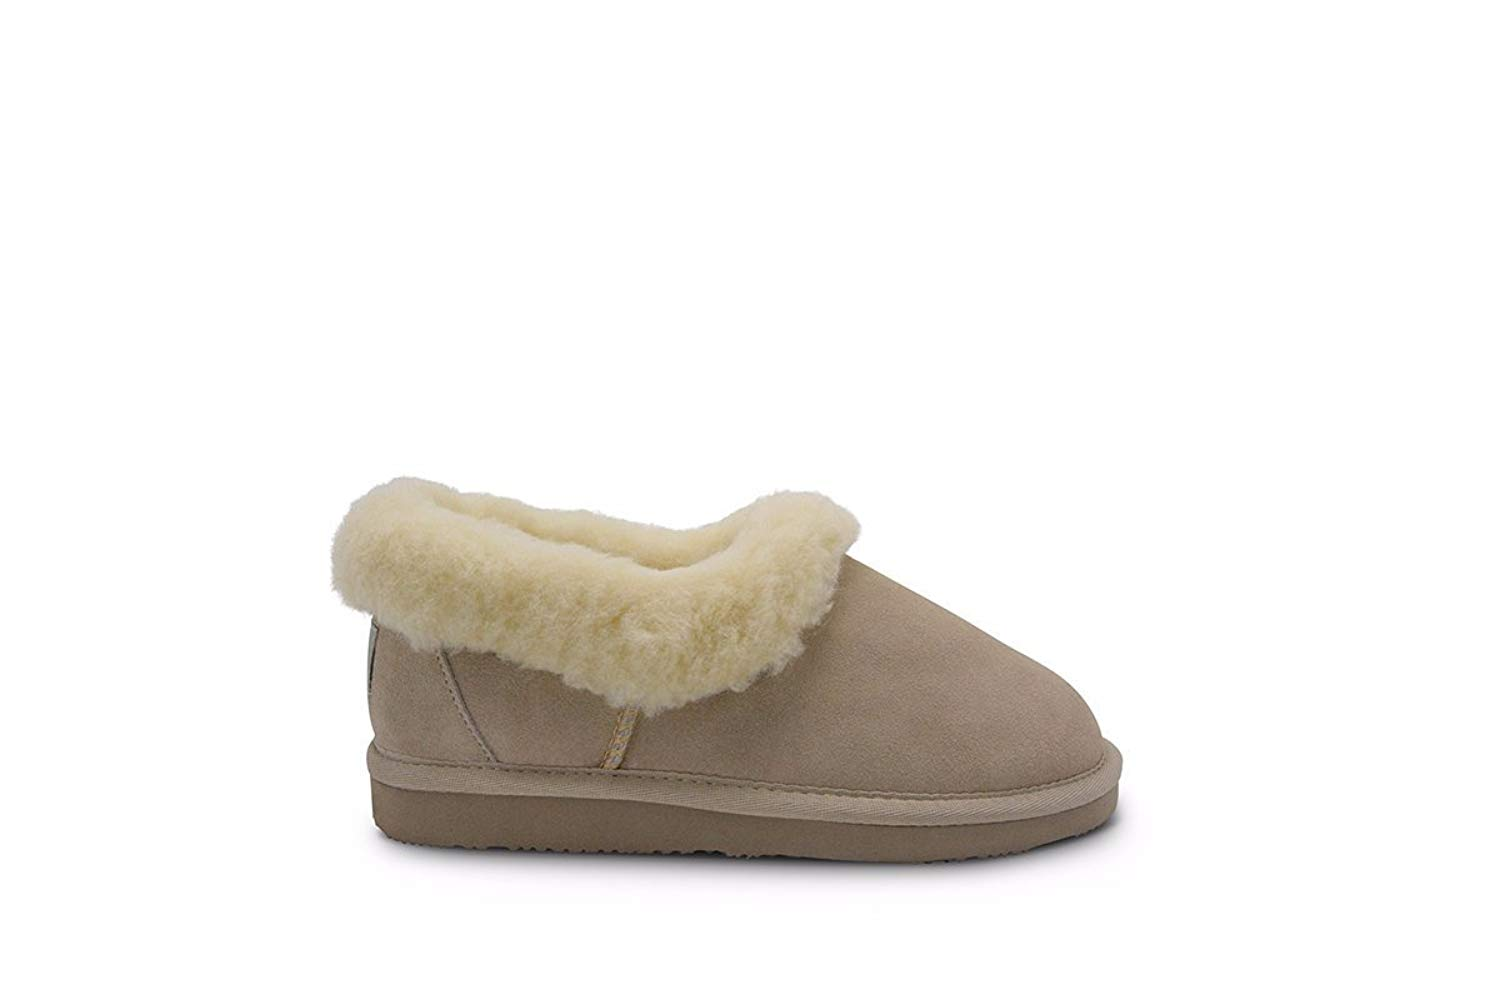 Aussie Merino Fur Lined Wool Slipper Cozy Indoor Warm House Slipper W/Indoor Outdoor Sole-Olivia